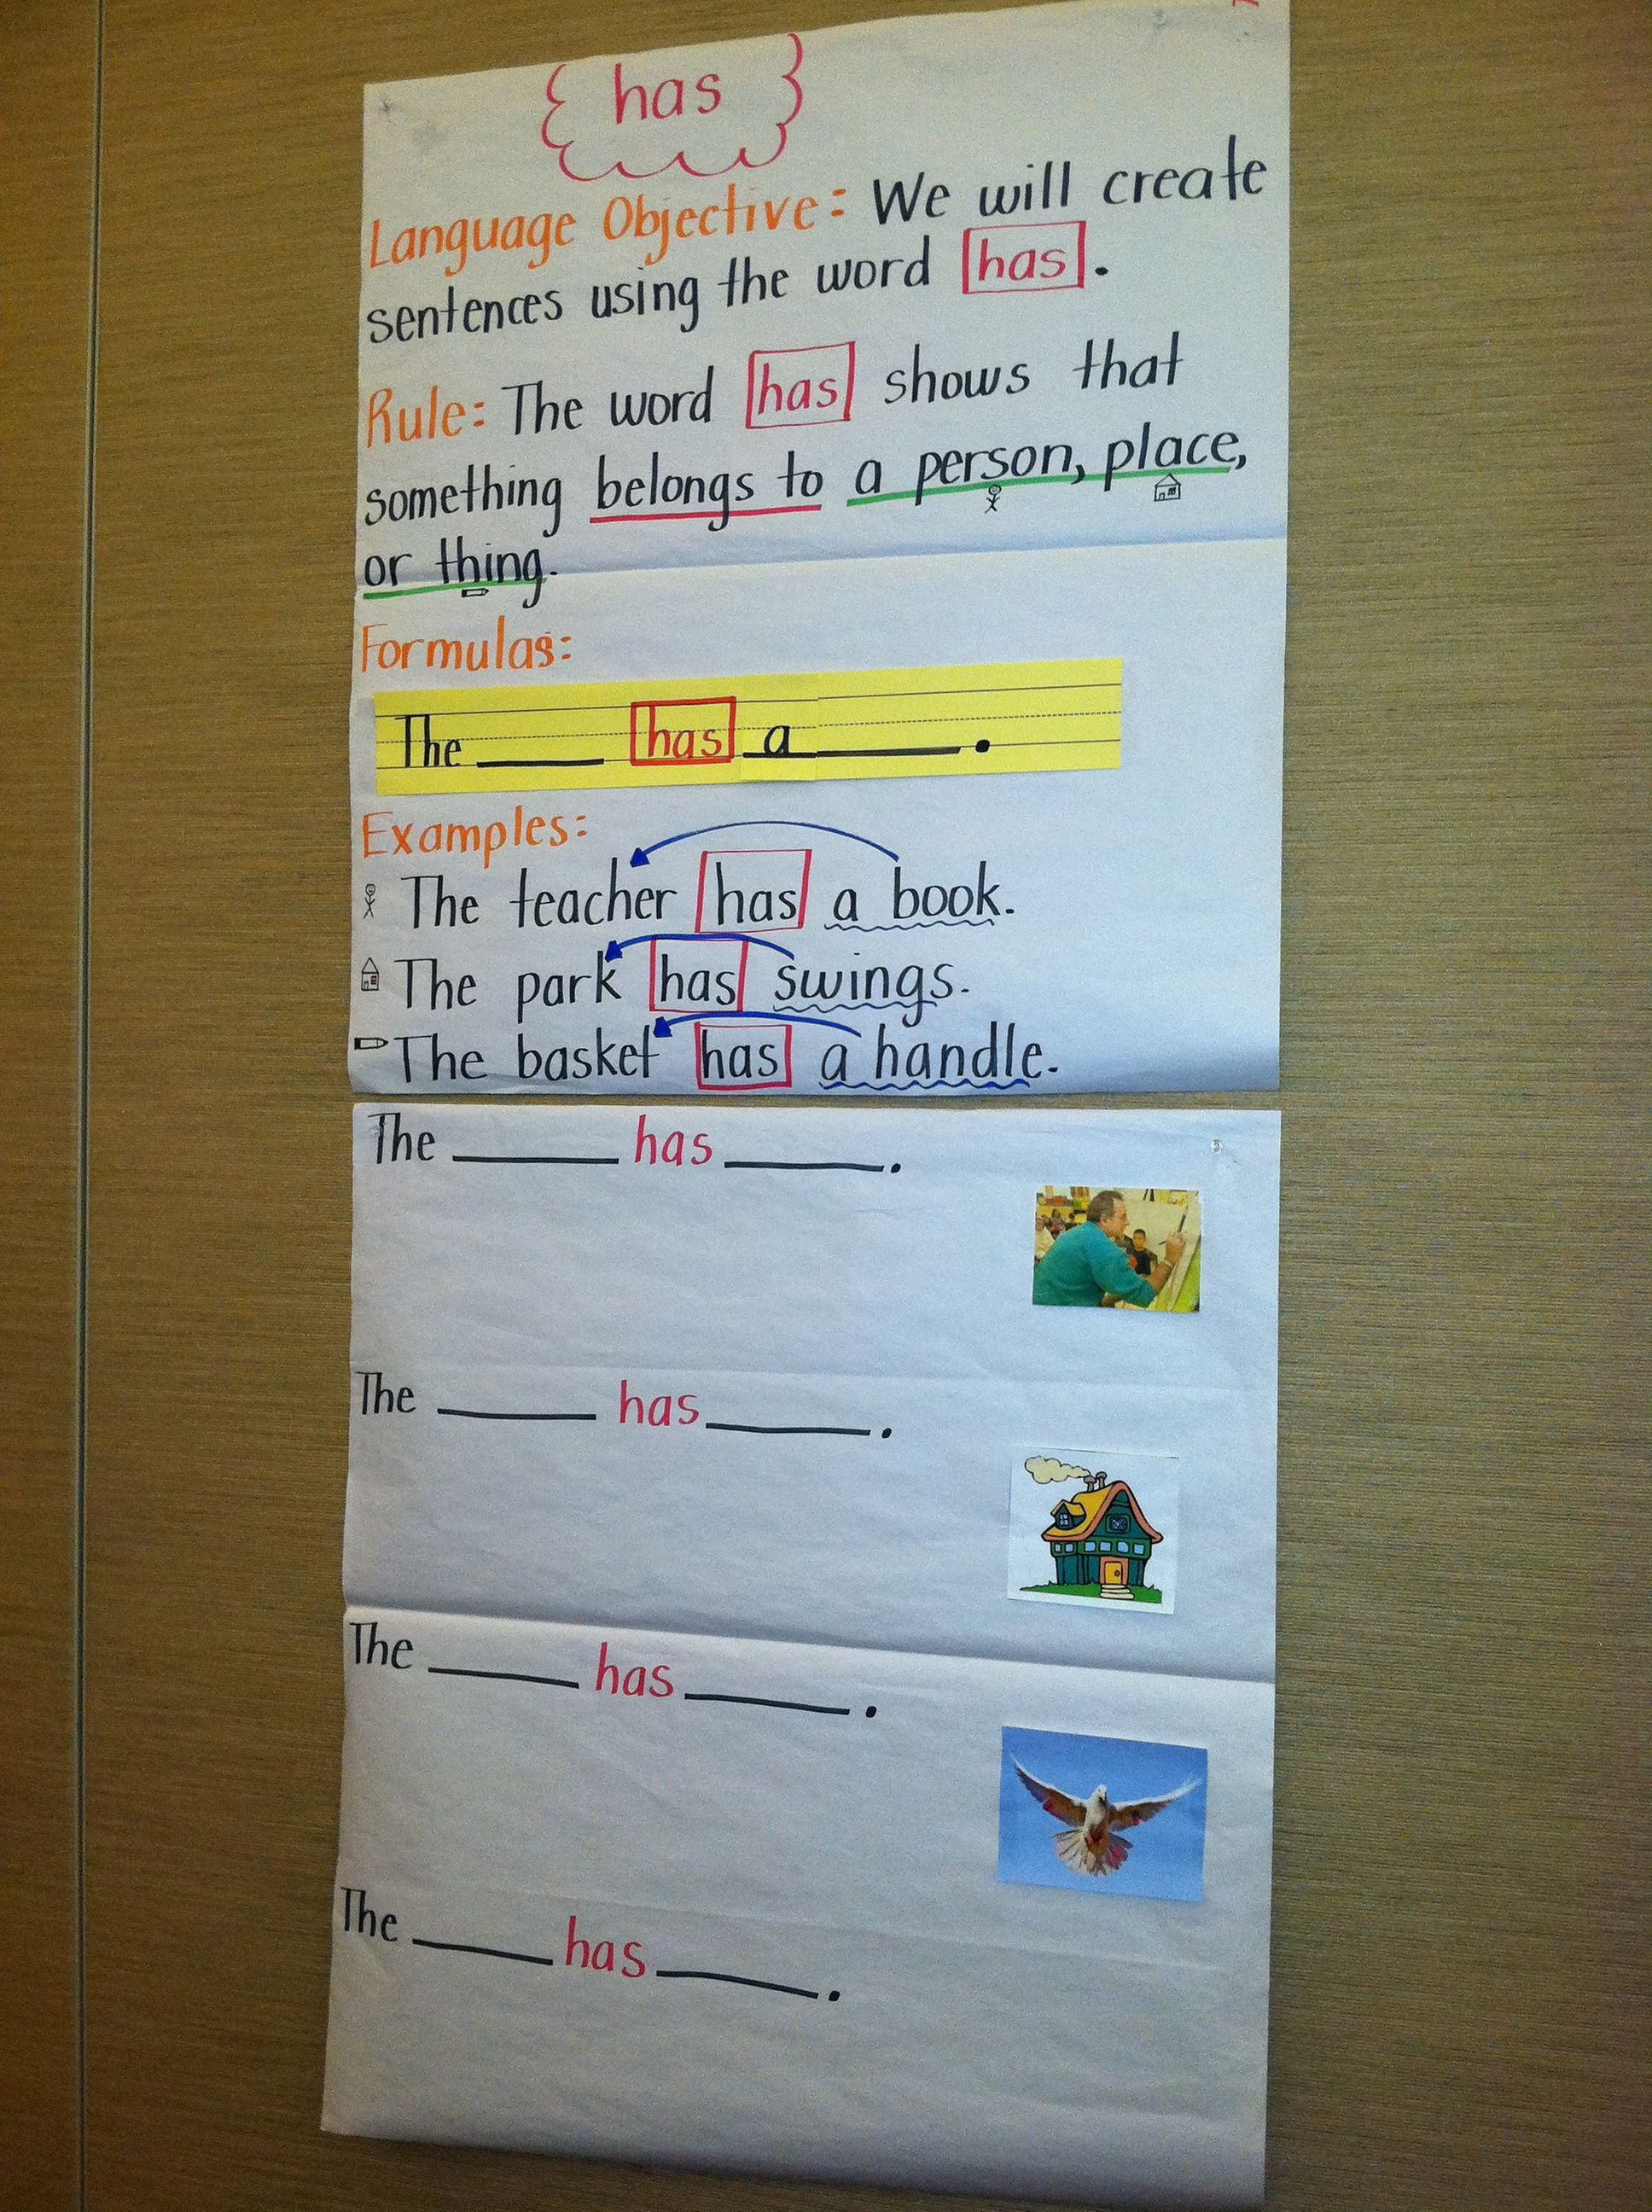 sentence helper Whether you are looking for simple spanish sentences, romantic spanish sentences, or funny spanish sentences, our sentence builder tool will assist you.